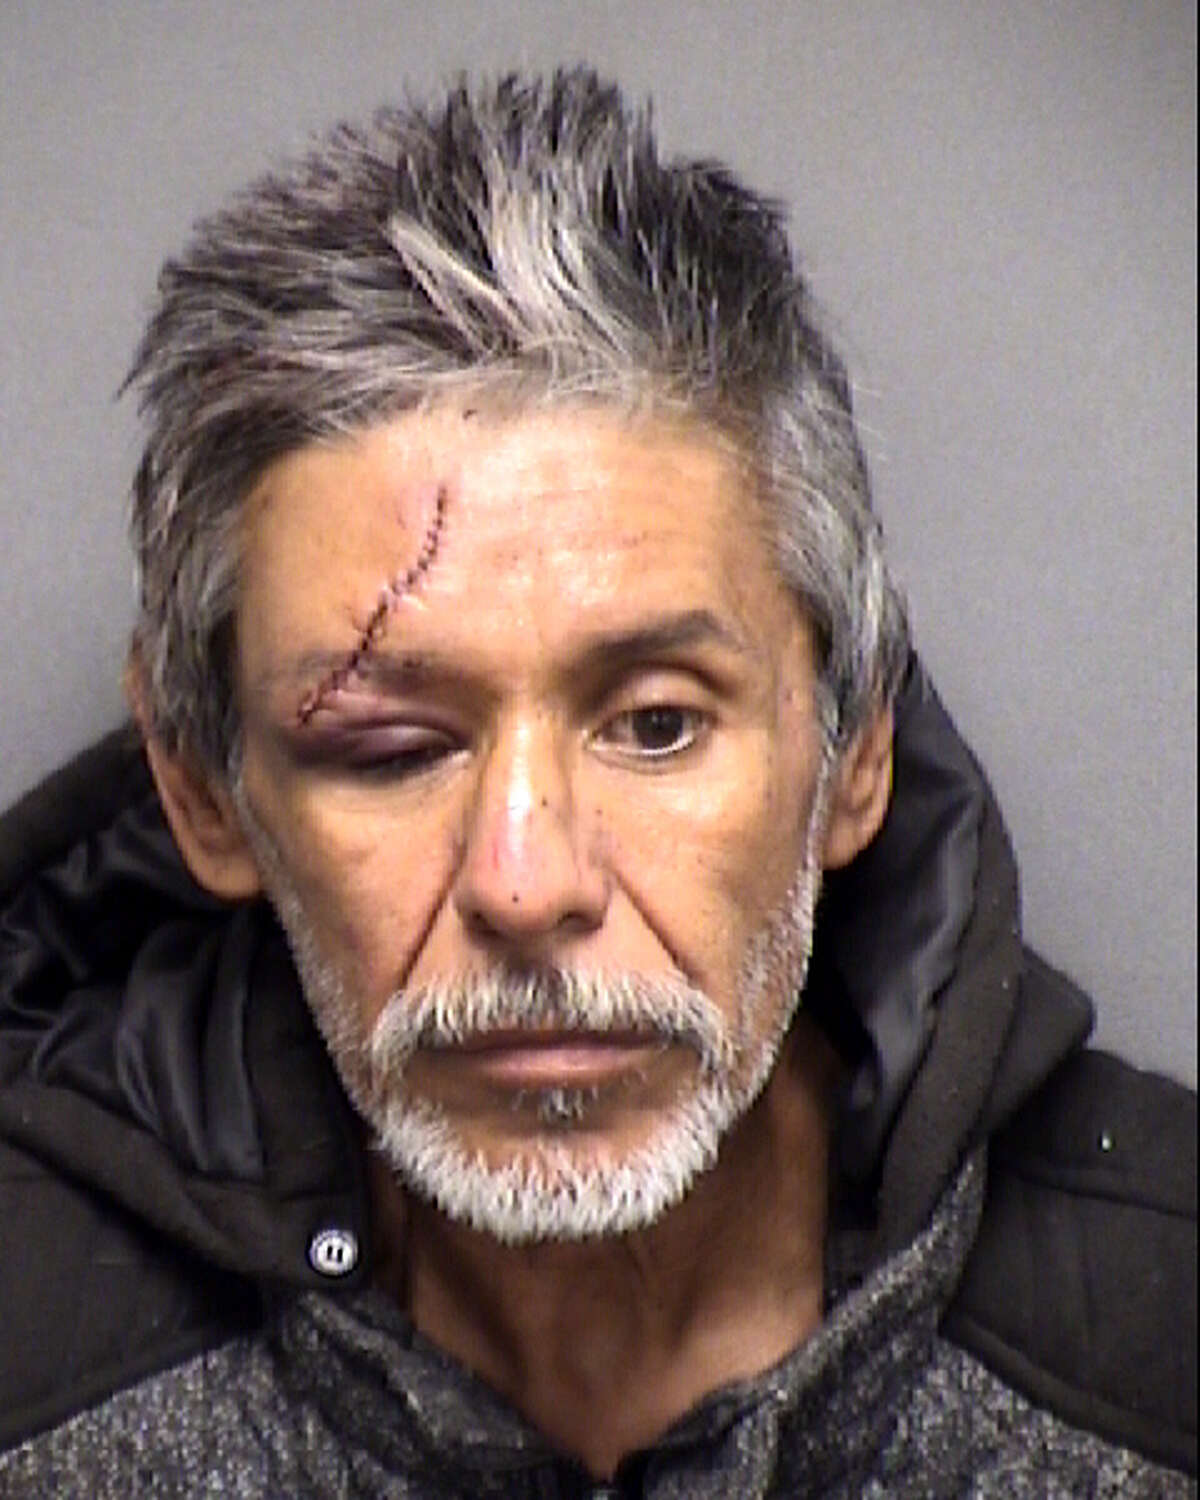 Gilbert Mendoza was charged with driving while intoxicated, third or more,on Jan. 29, 2019.